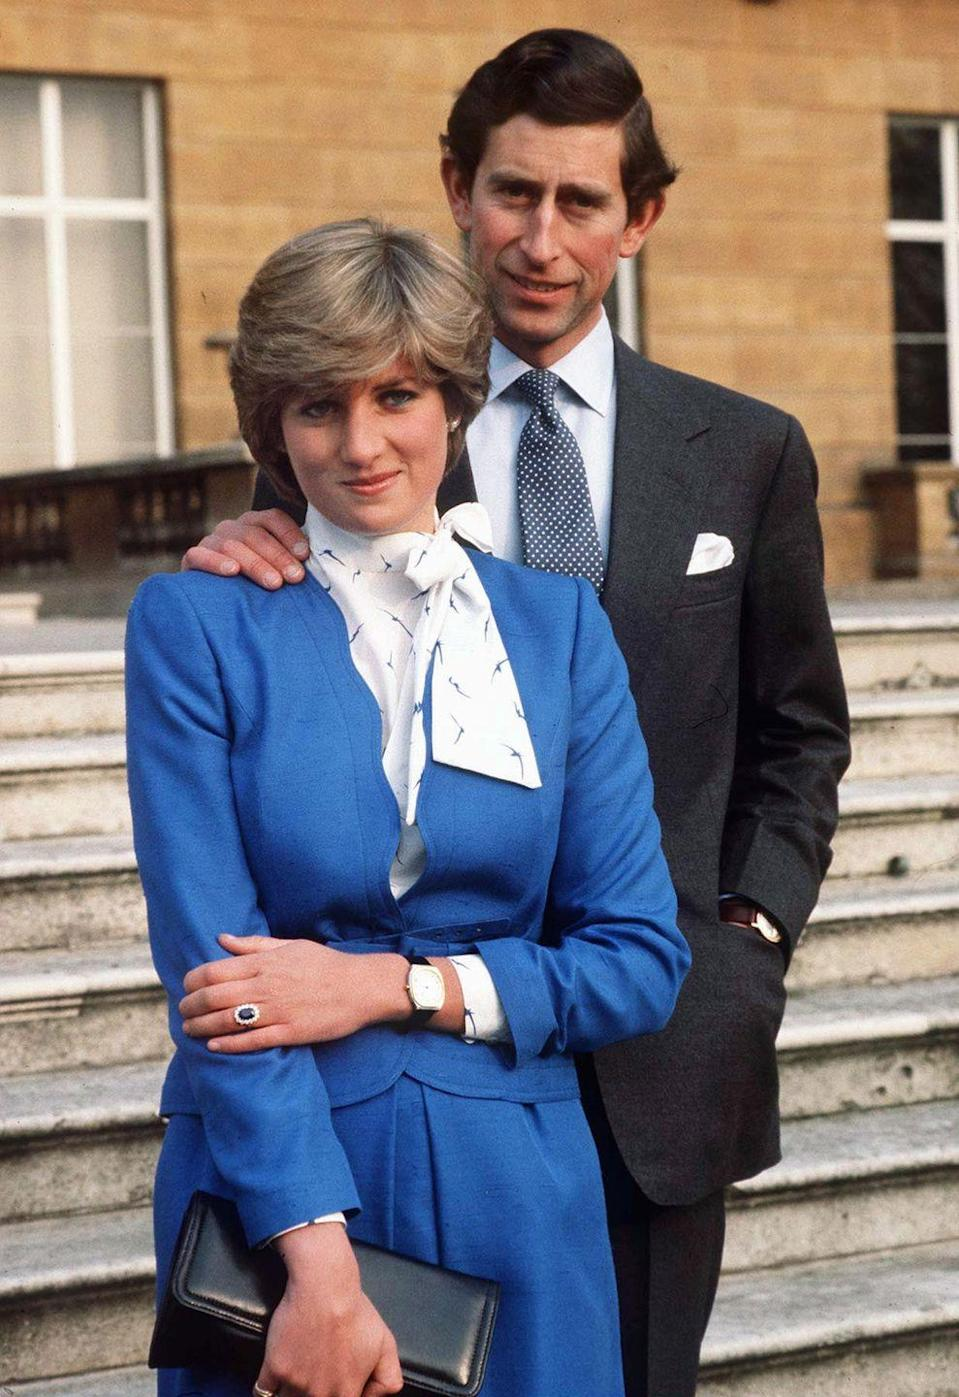 """<p>When the engagement was formally announced, this famous photo of Diana and Charles on the grounds of <a href=""""https://buckinghampalace.co.uk"""" rel=""""nofollow noopener"""" target=""""_blank"""" data-ylk=""""slk:Buckingham Palace"""" class=""""link rapid-noclick-resp"""">Buckingham Palace</a> was released. It's obvious by her somewhat awkward body language that she wasn't all that comfortable in the spotlight.</p>"""